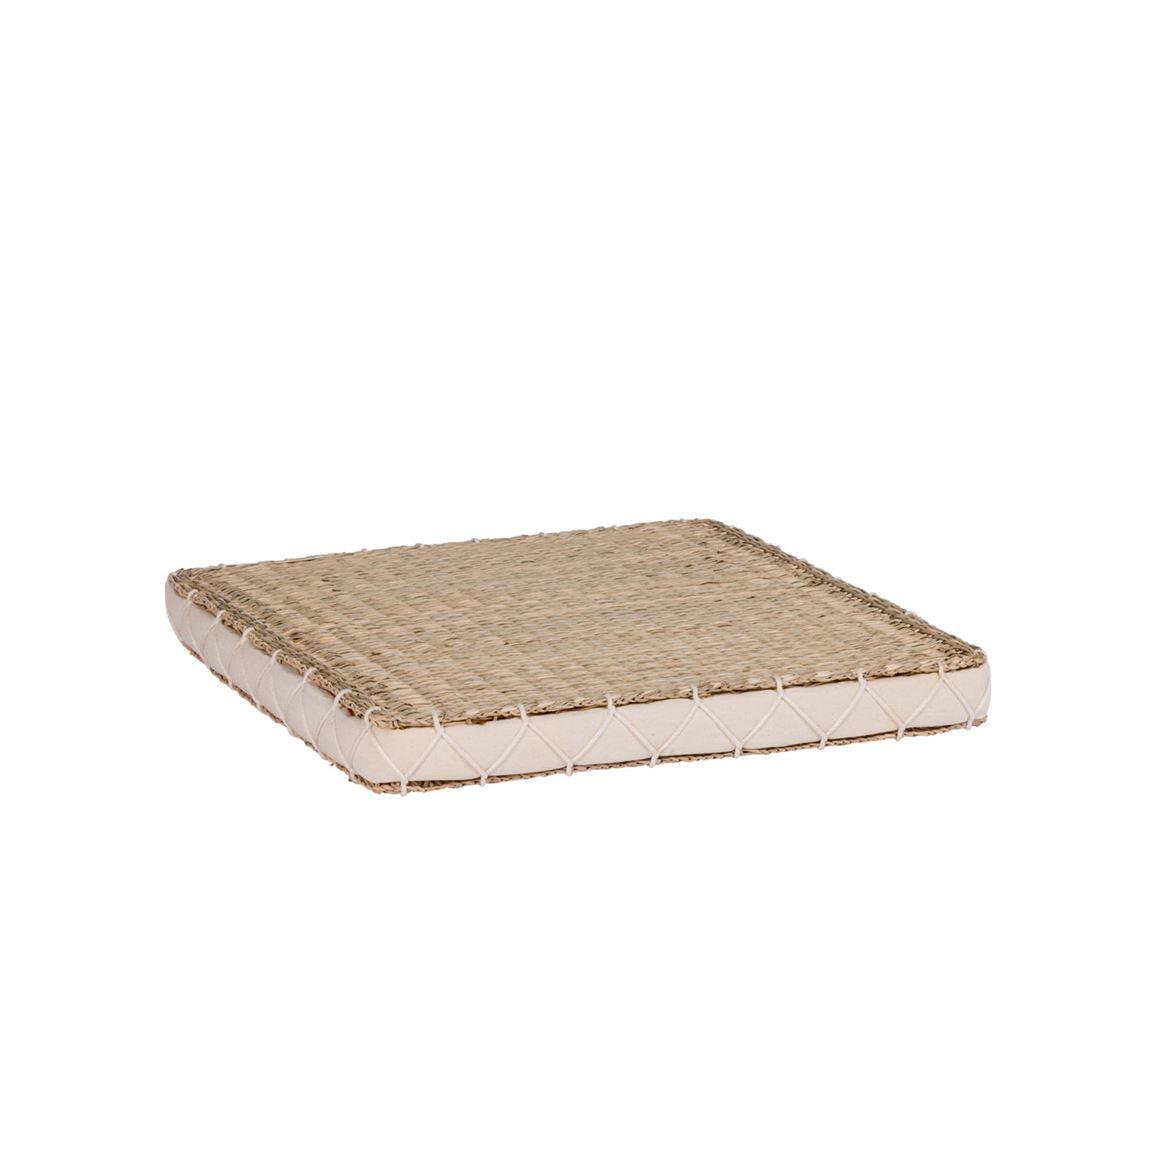 SEAGRASS Coussin matelas blanc H 4 x Larg. 40 x Long. 40 cm_seagrass-coussin-matelas-blanc-h-4-x-larg--40-x-long--40-cm